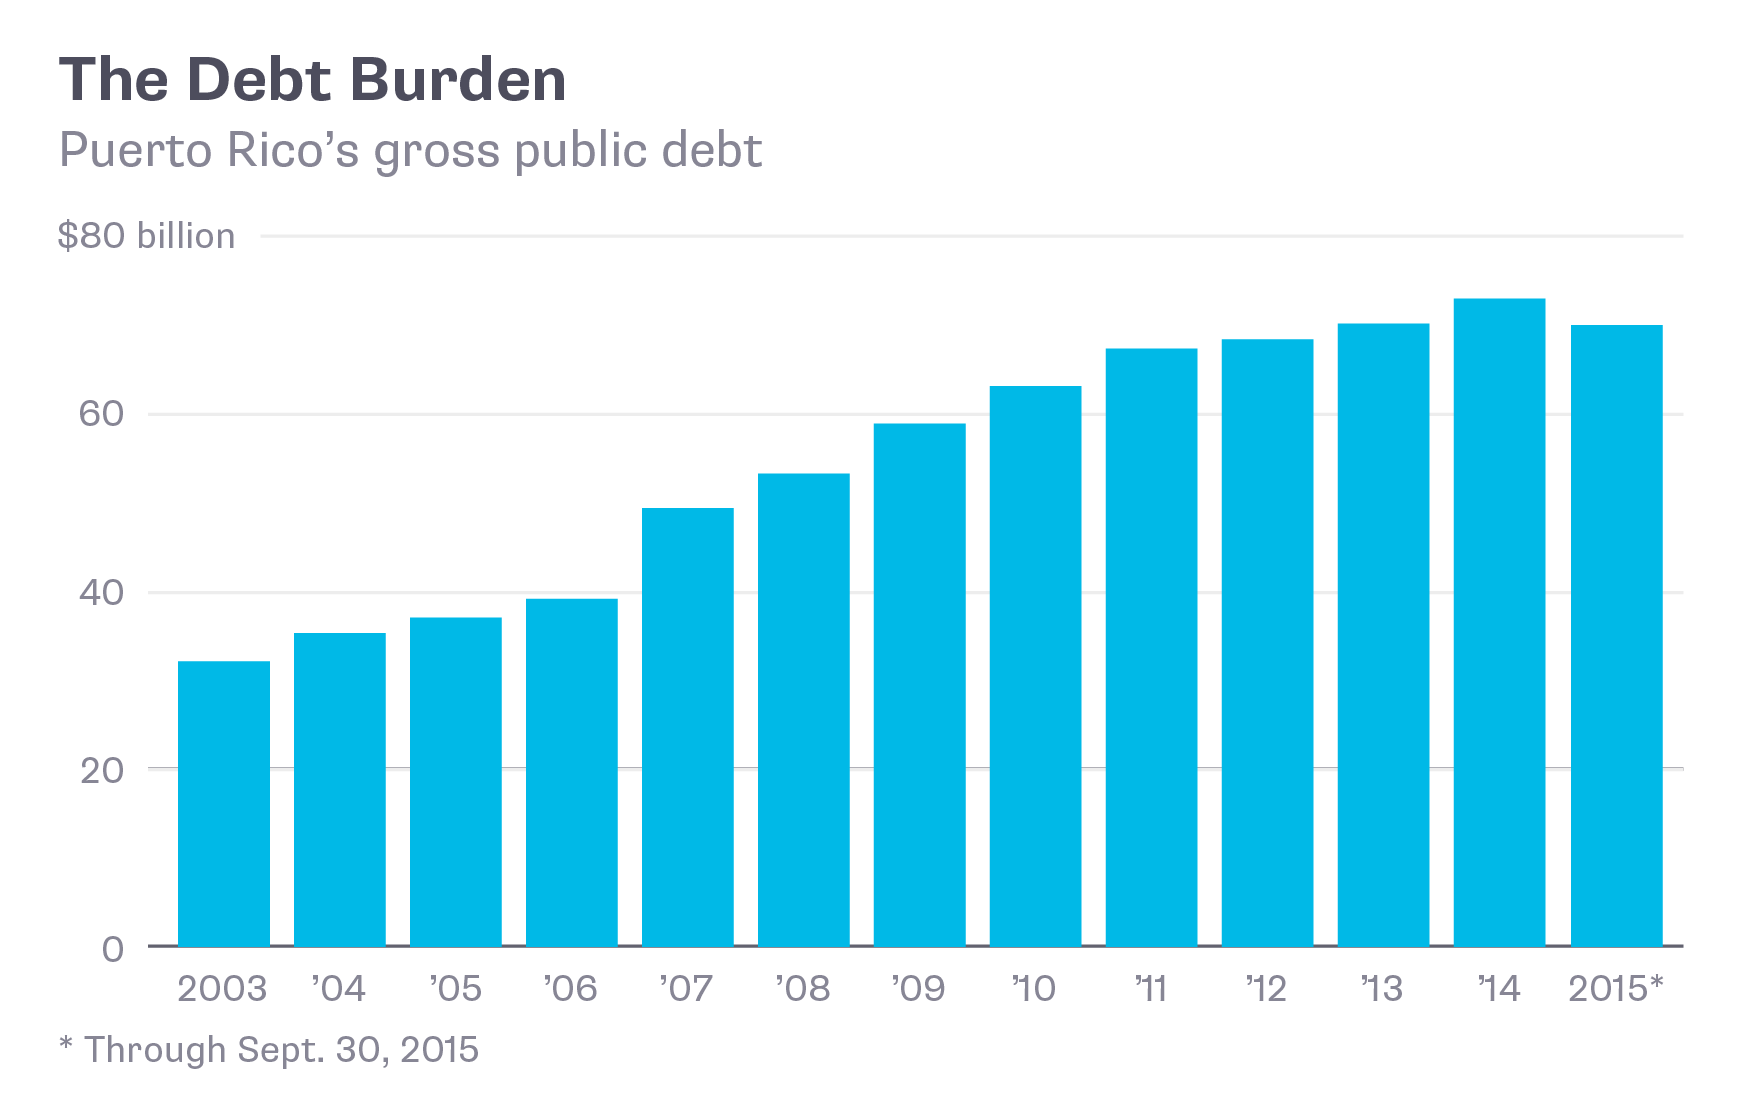 The Debt Burden - Puerto Rico's gross public debt